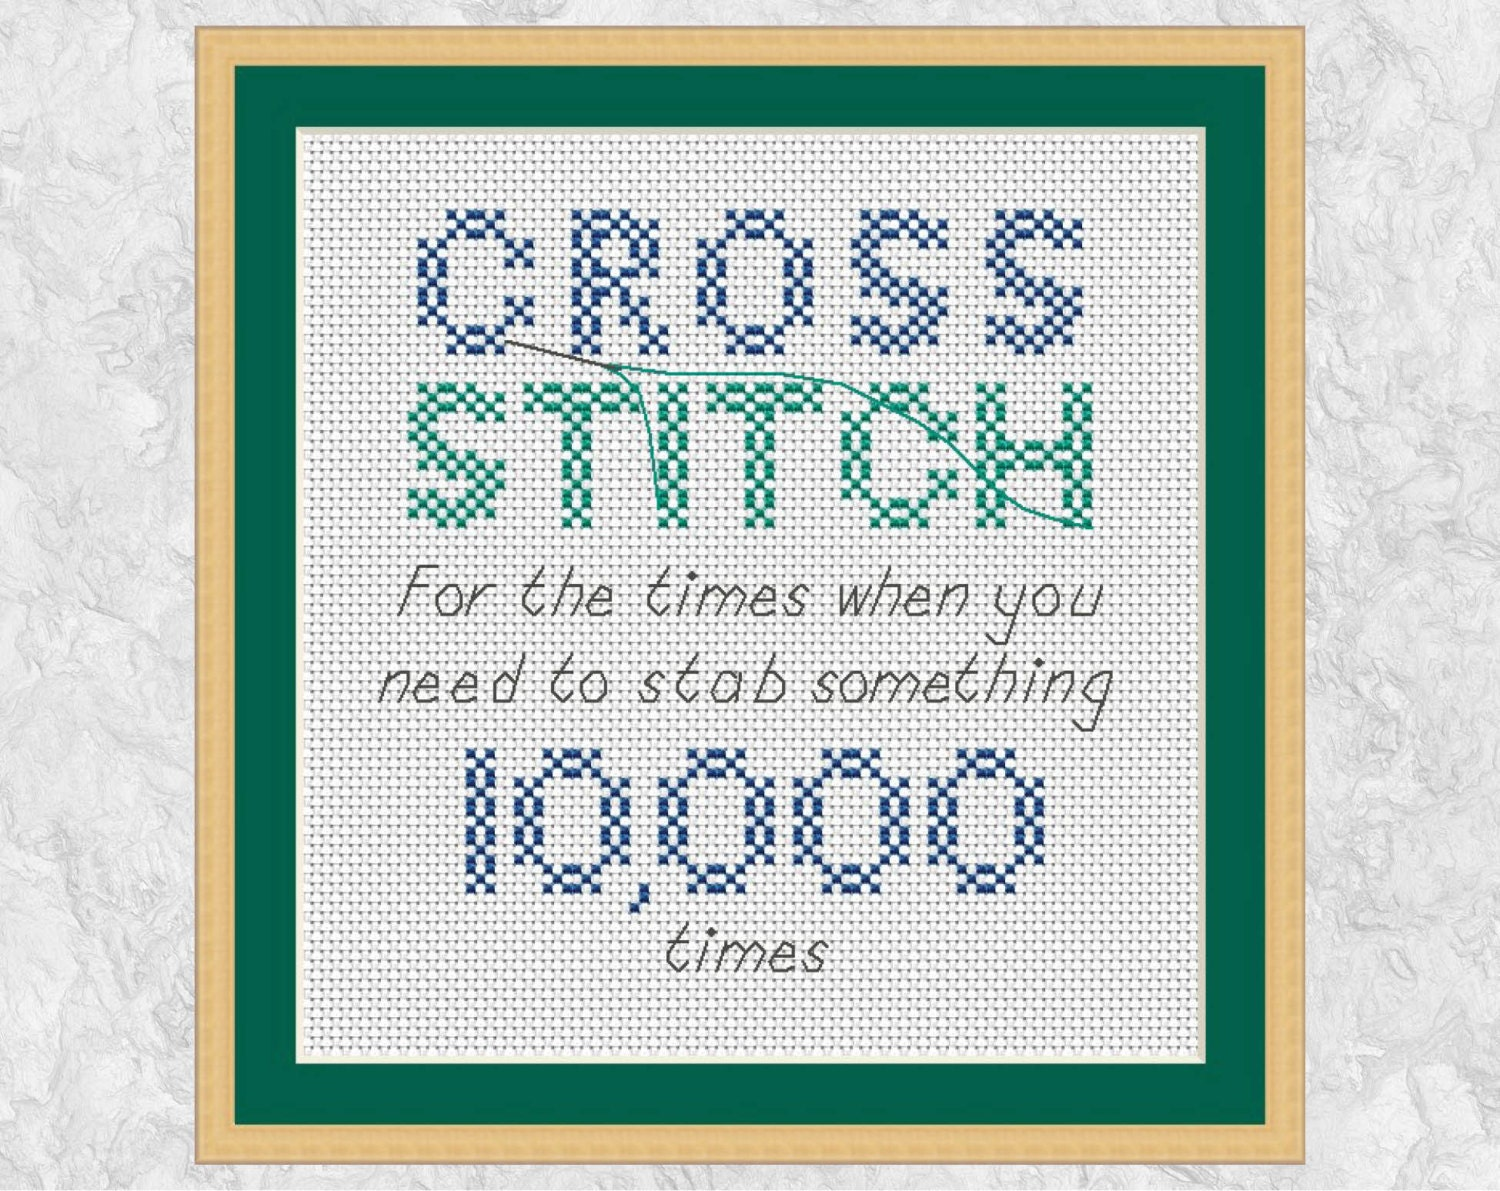 Funny cross stitch pixshark images galleries